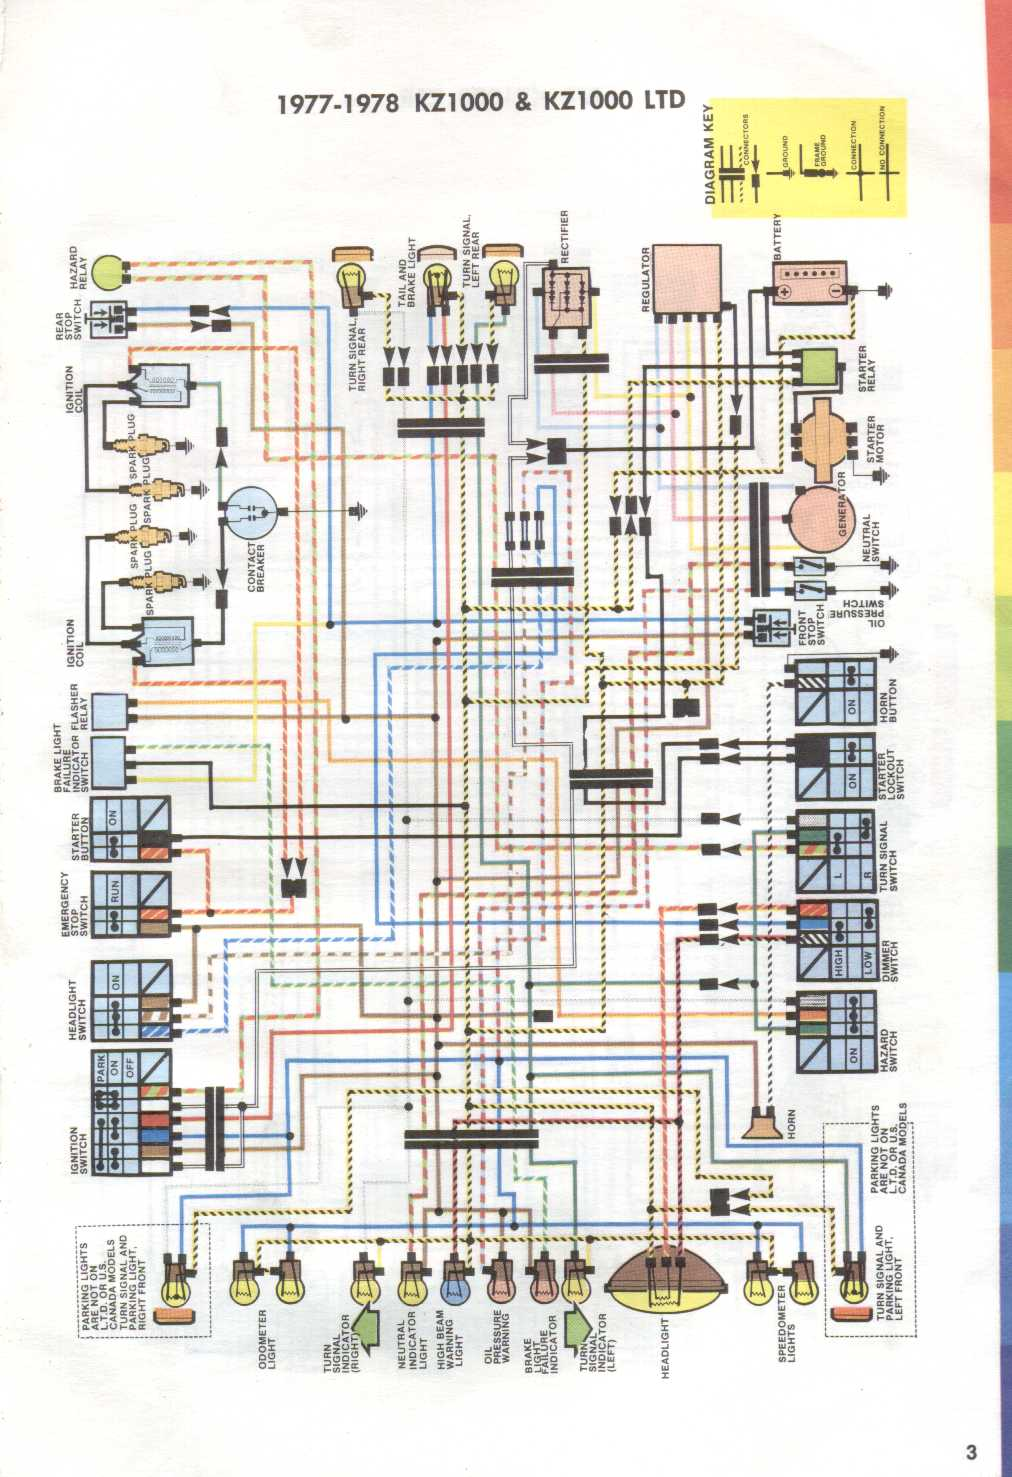 Kawasaki_KZ1000 LTD_Wiring_Diagram_1977 1978 1976 xs750 wiring diagram 99 yamaha big bear wiring diagram  at readyjetset.co